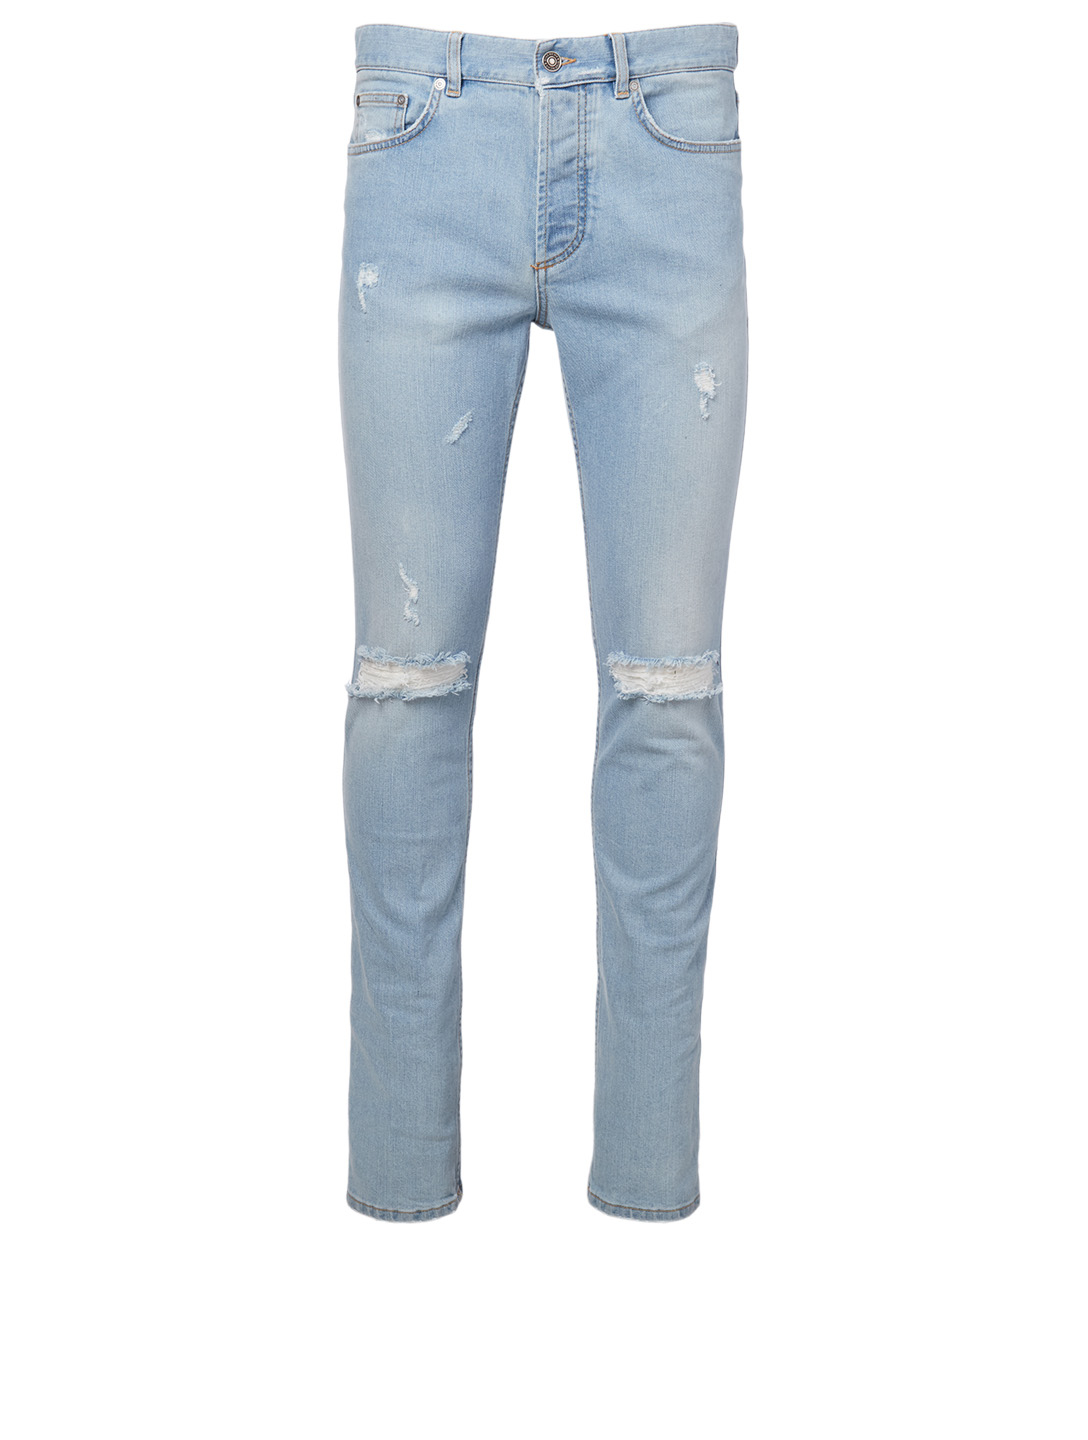 GIVENCHY Destroyed Slim Jeans Men's Blue